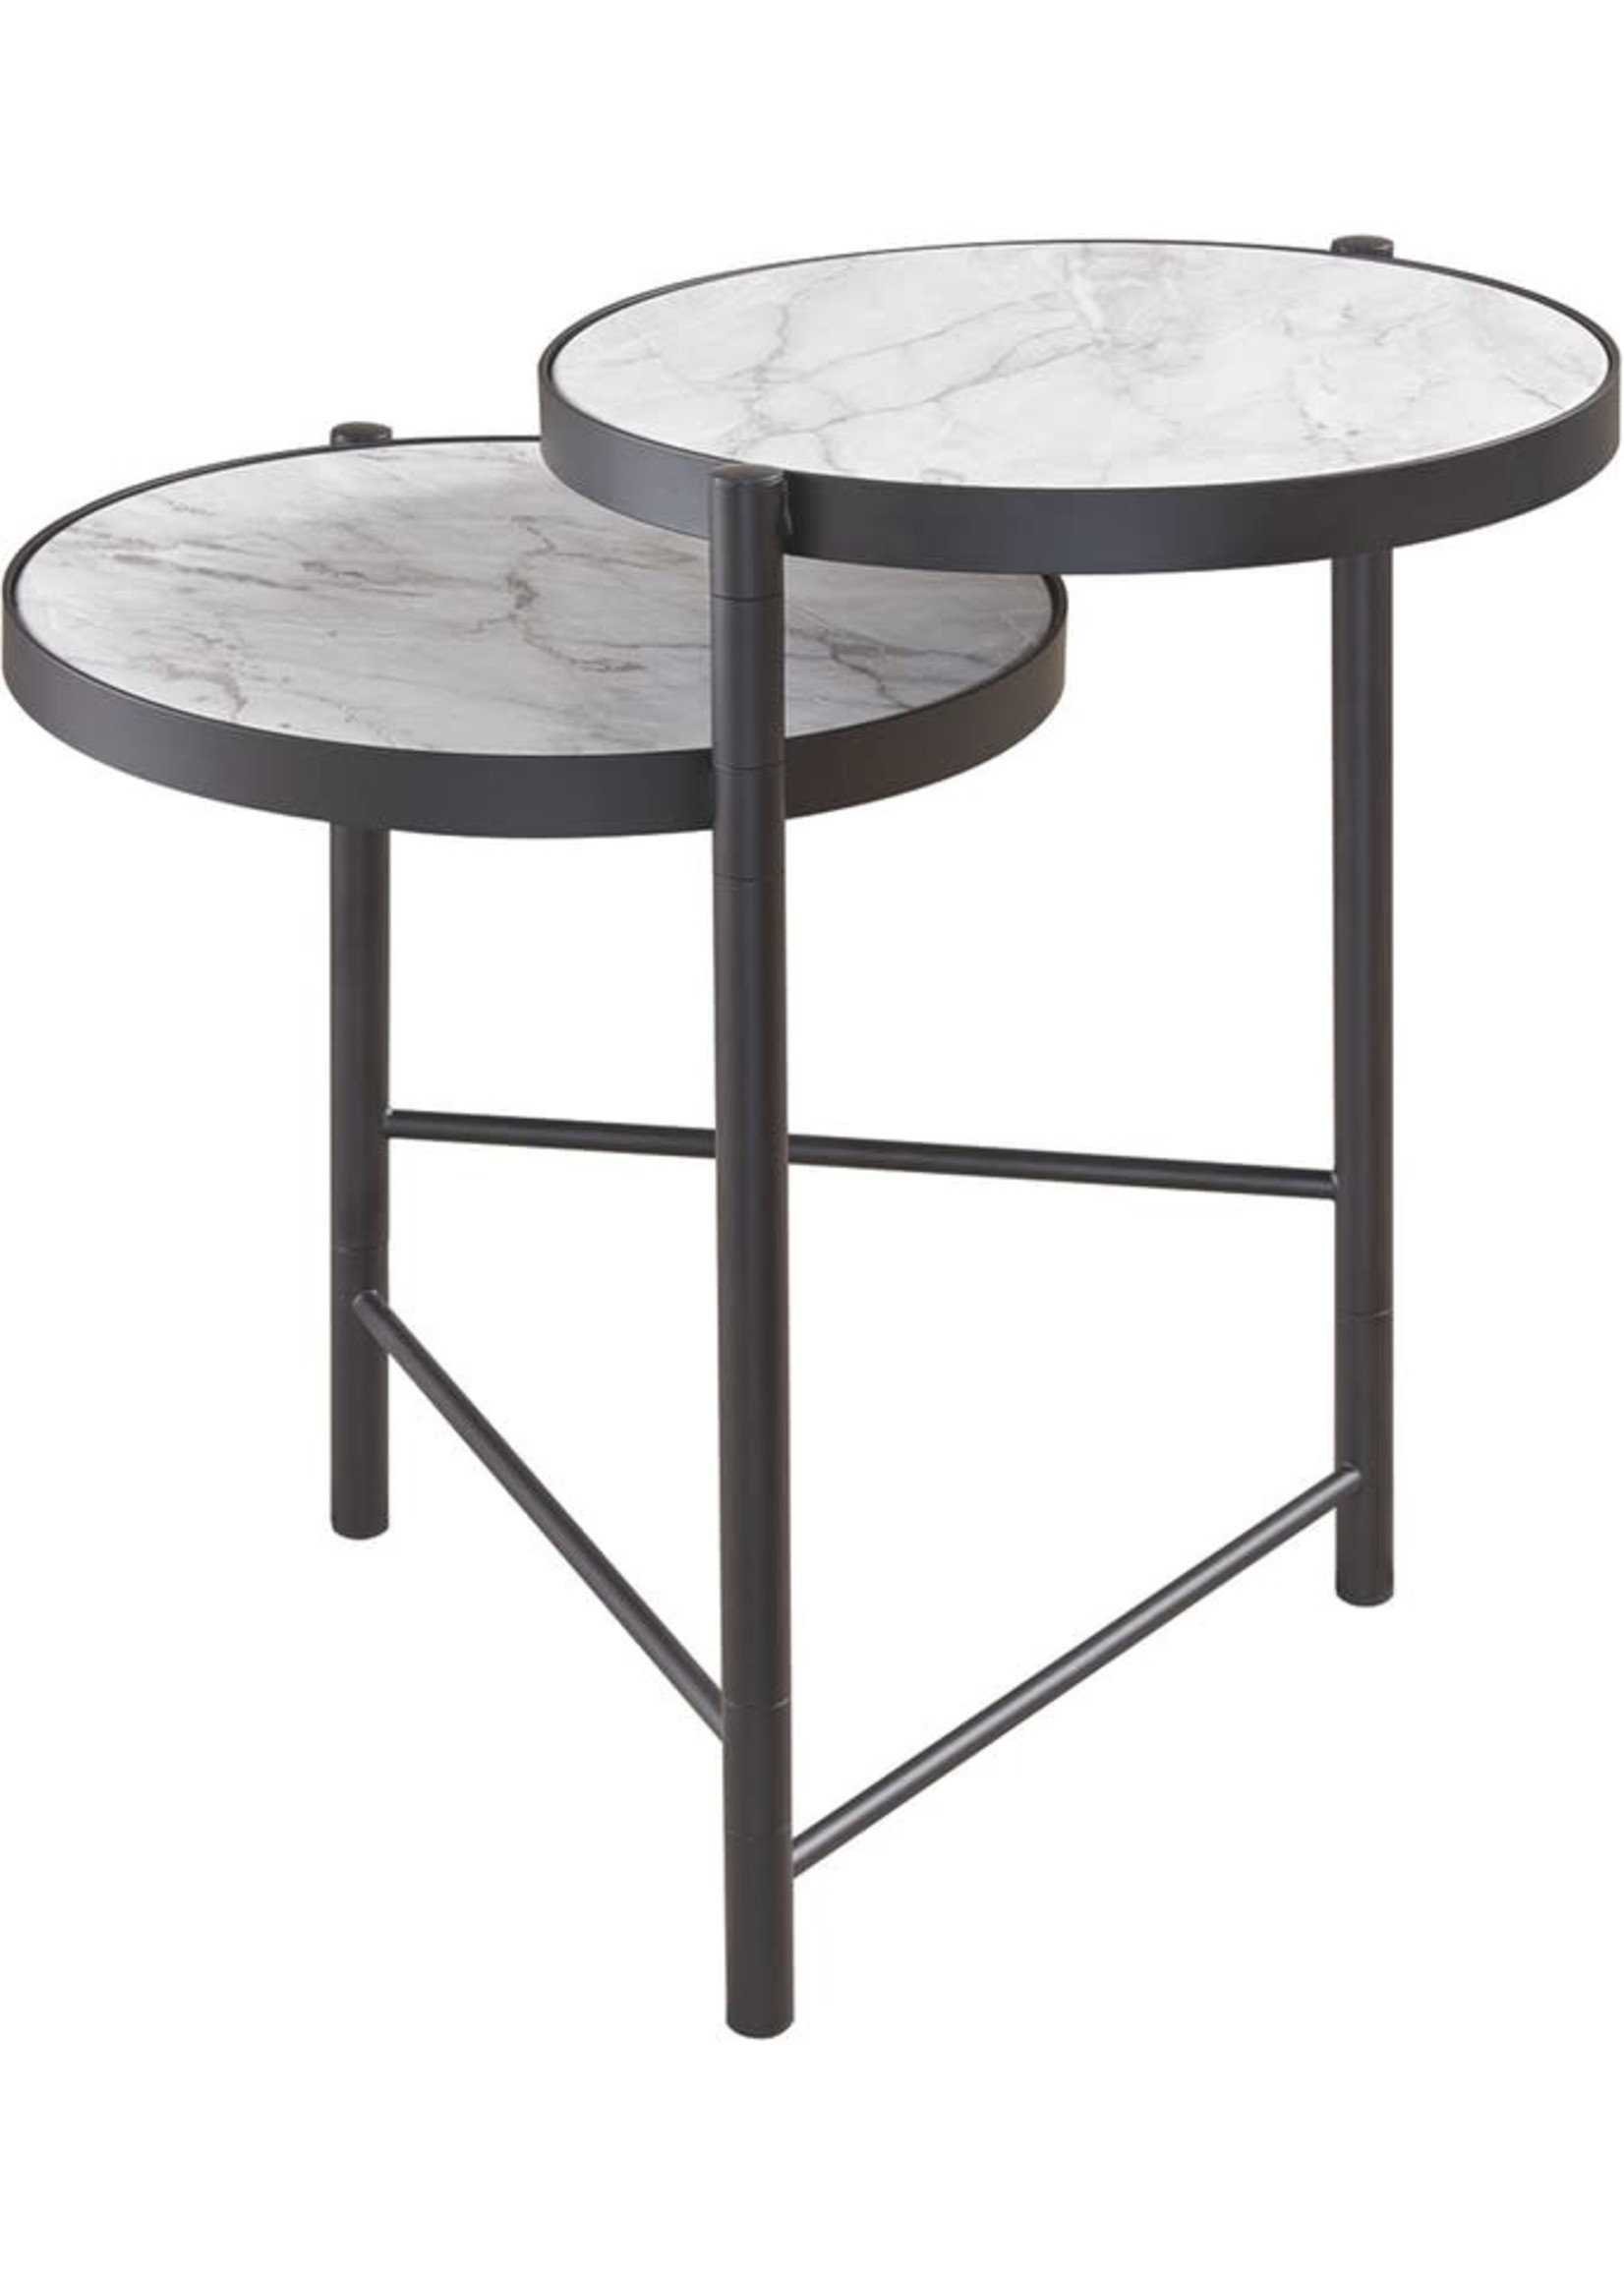 ASHLEY T148-6 ROUND END TABLE PLANNORE METAL/FAUX MARBLE